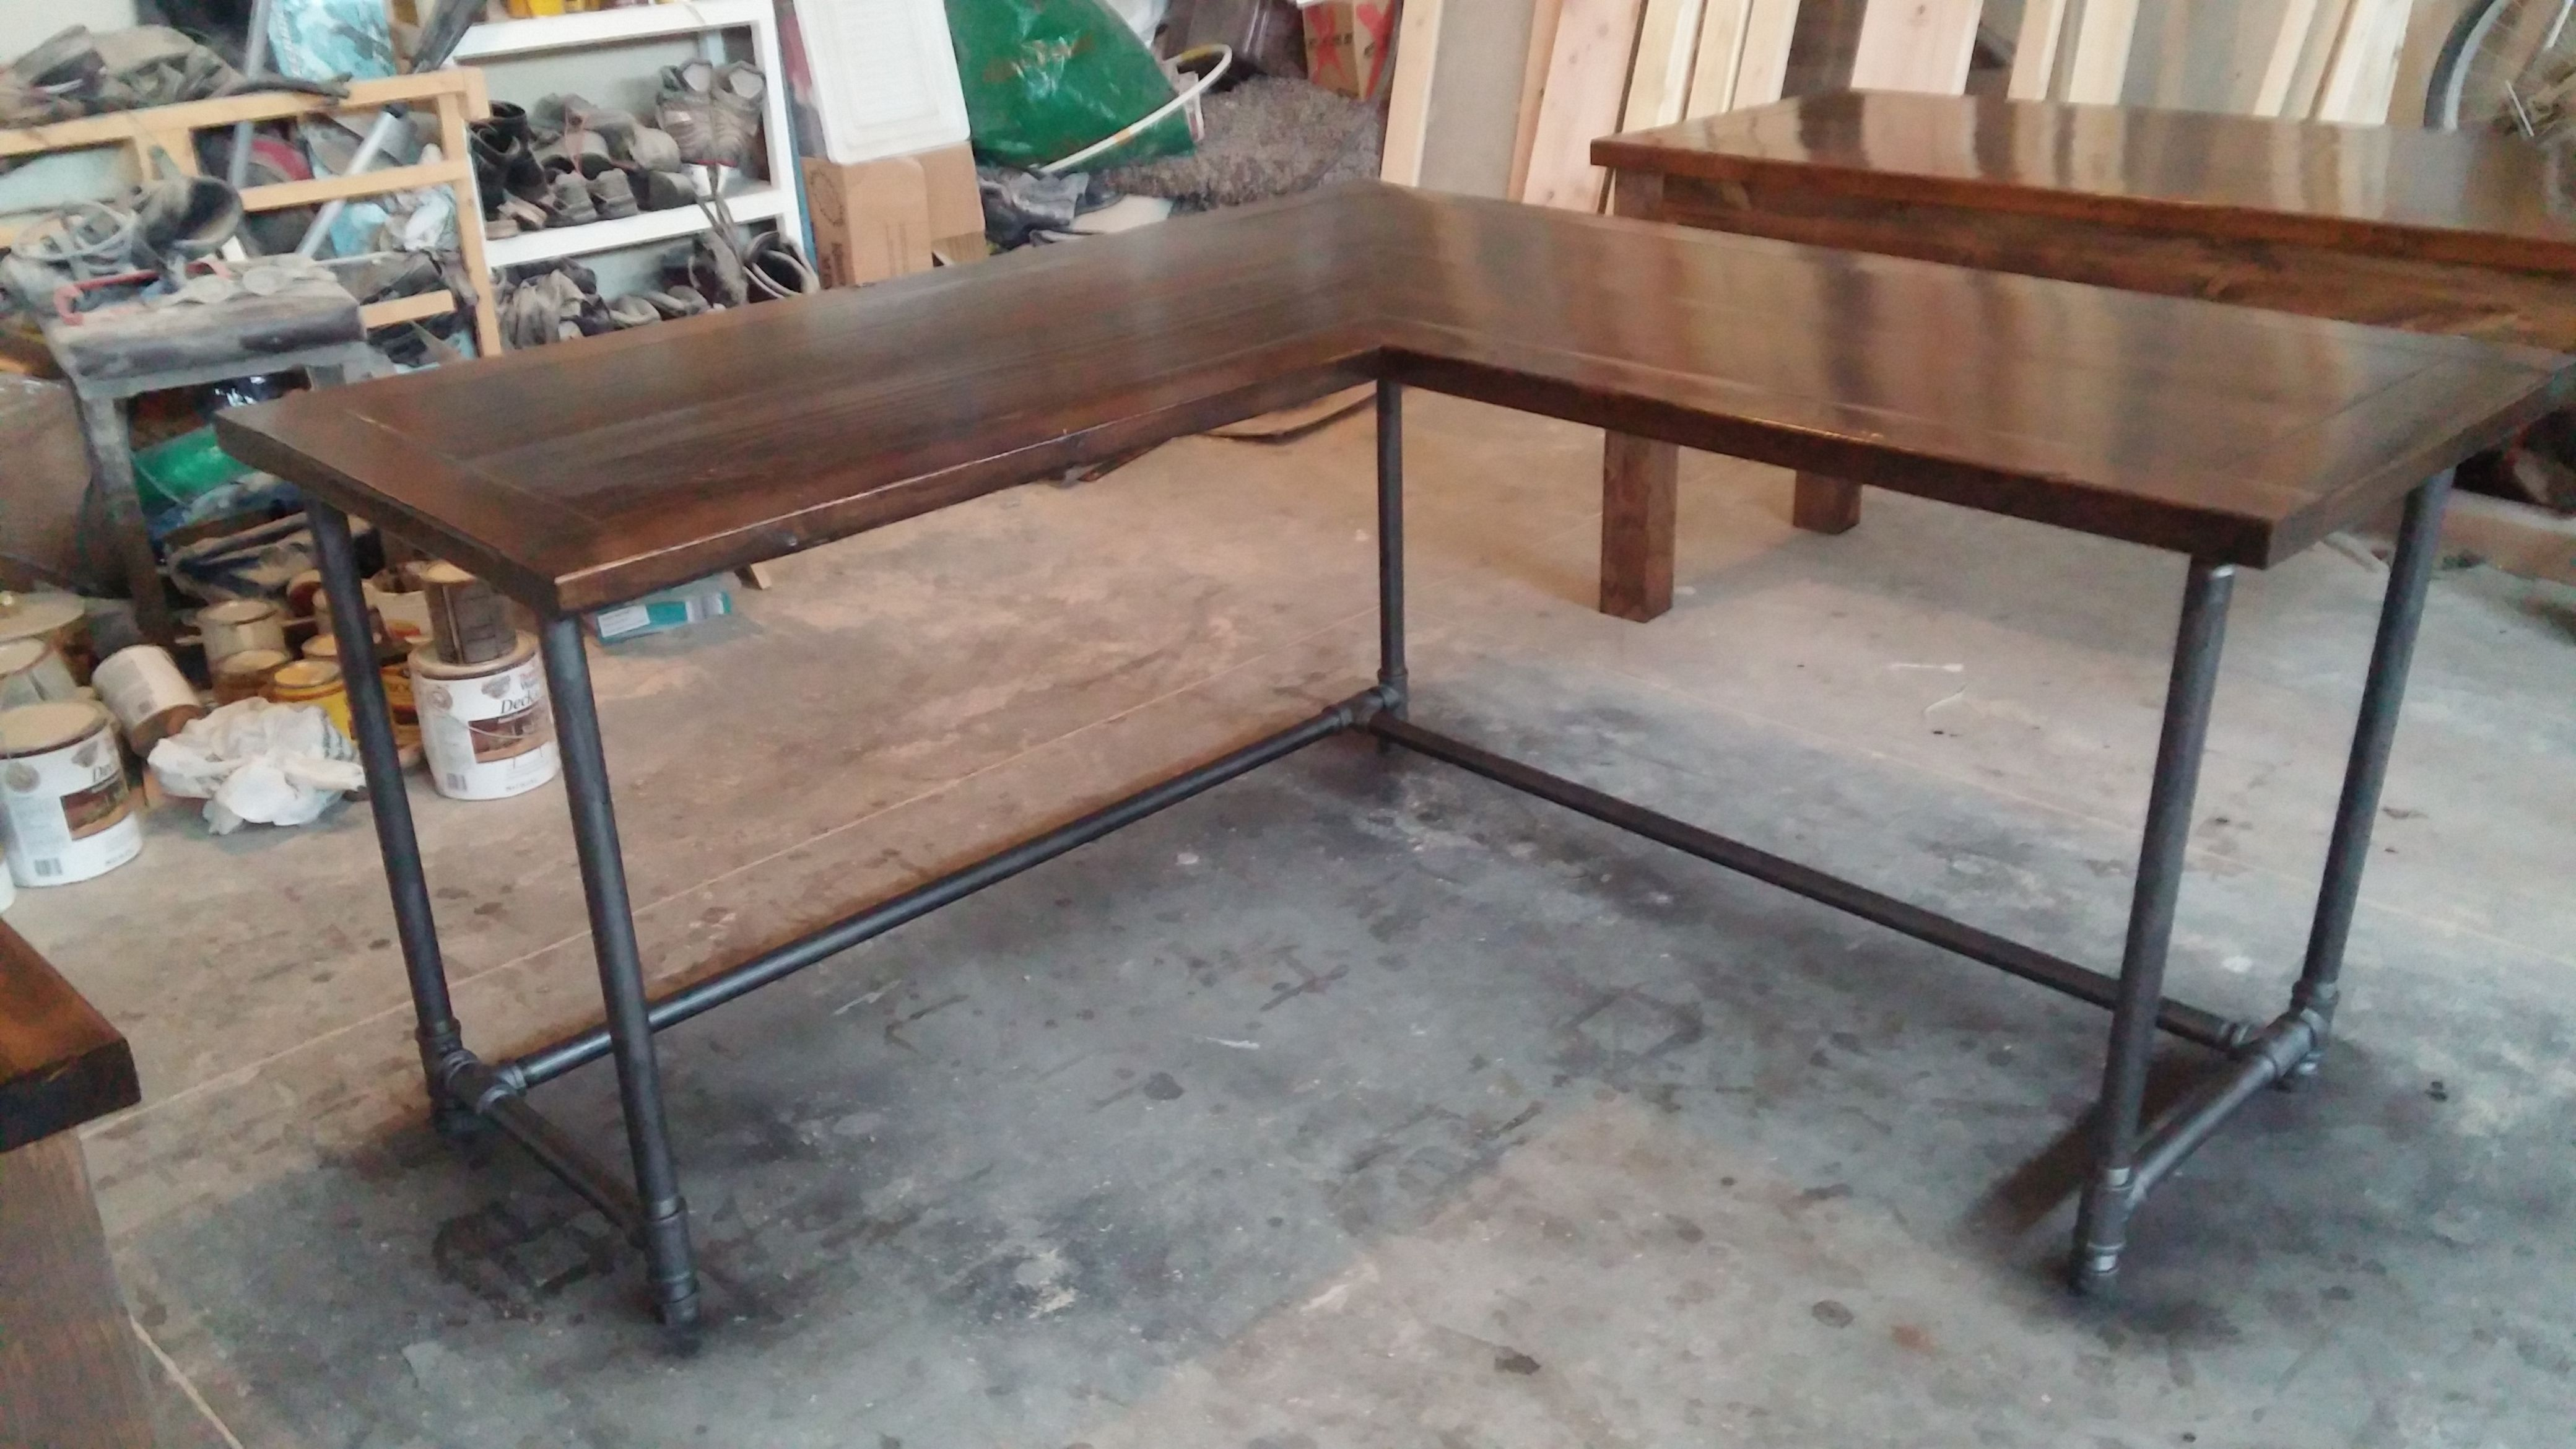 Rustic Americana Hardwood Executive Desk Home Office: 5x5 Rustic L Shaped Desk With Pipe Base